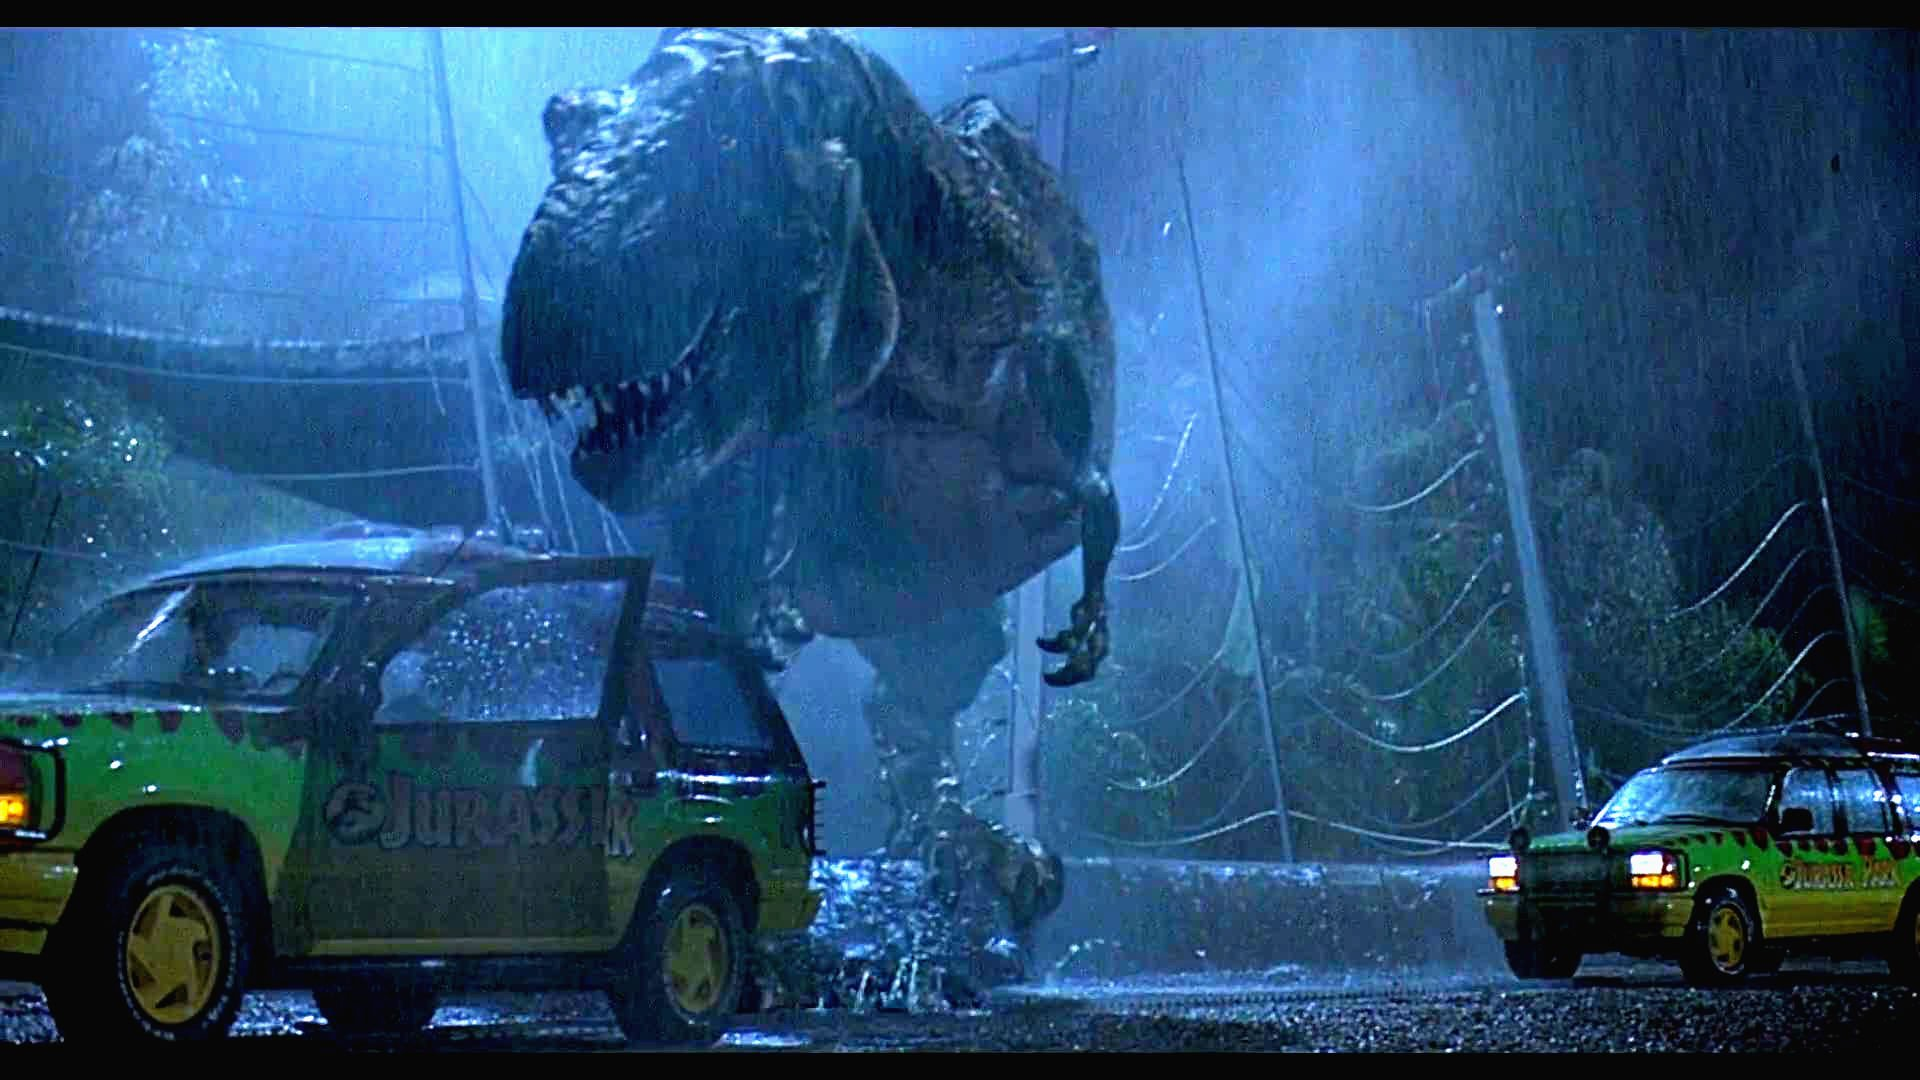 Jurassicparktrexwallpaper Toptenz The Lost World Jurassic Park HD Wallpapers Backgrounds 1920x1080